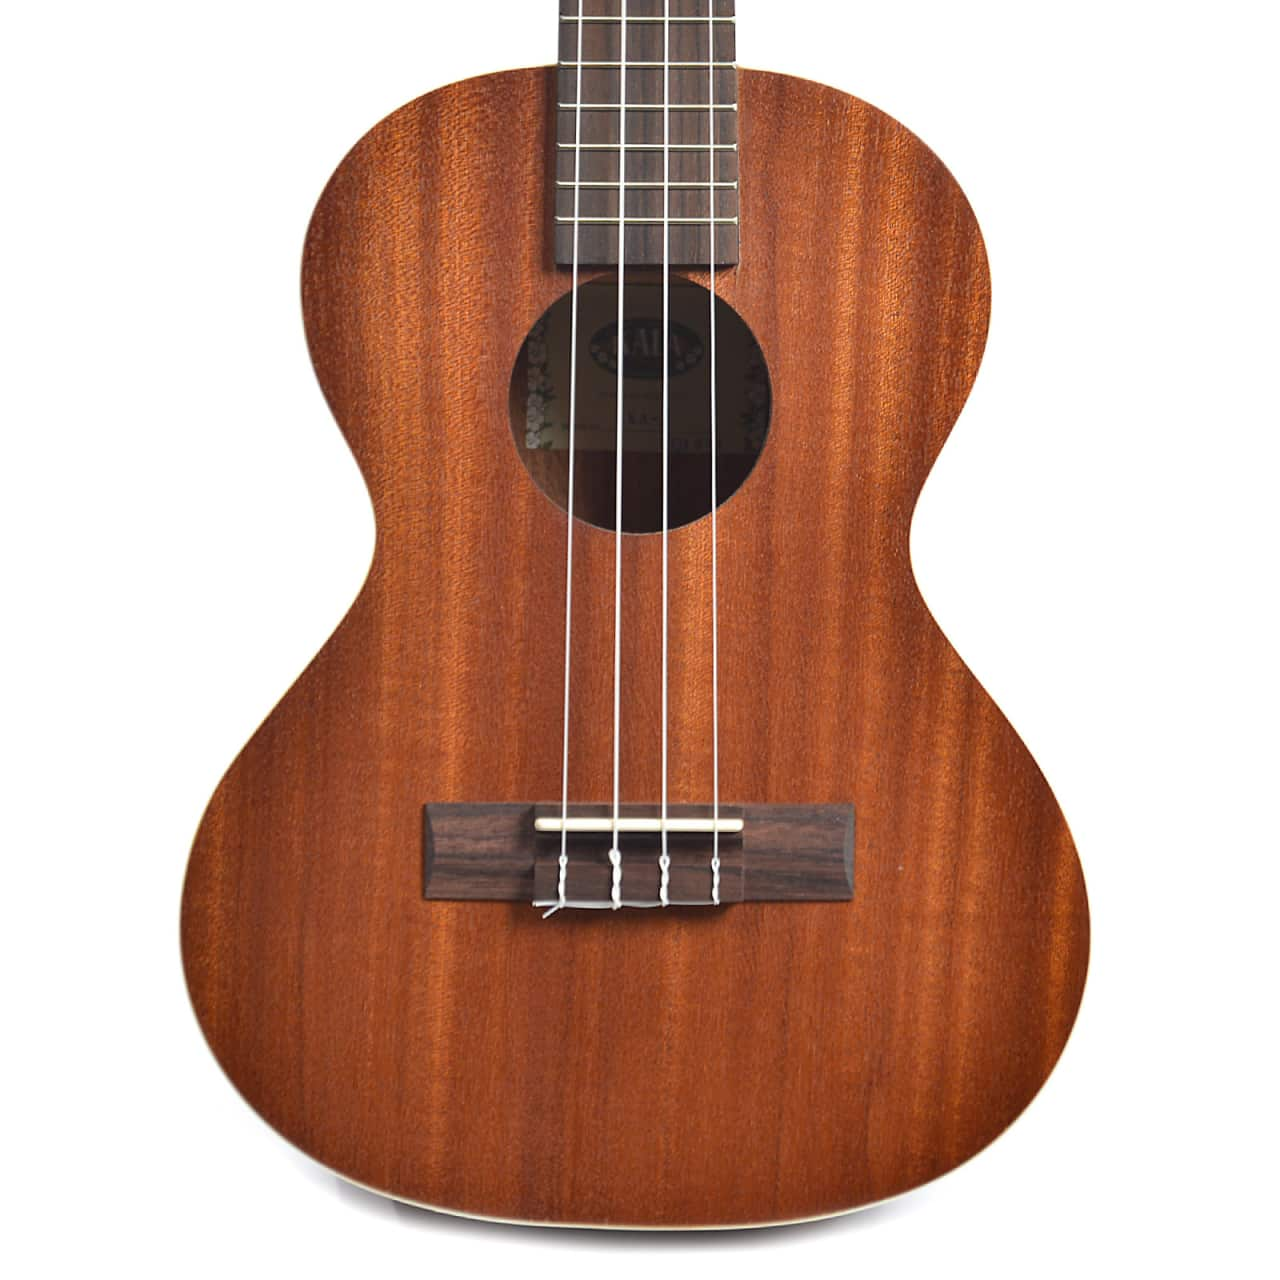 kala ka t tenor ukulele mahogany chicago music exchange reverb. Black Bedroom Furniture Sets. Home Design Ideas